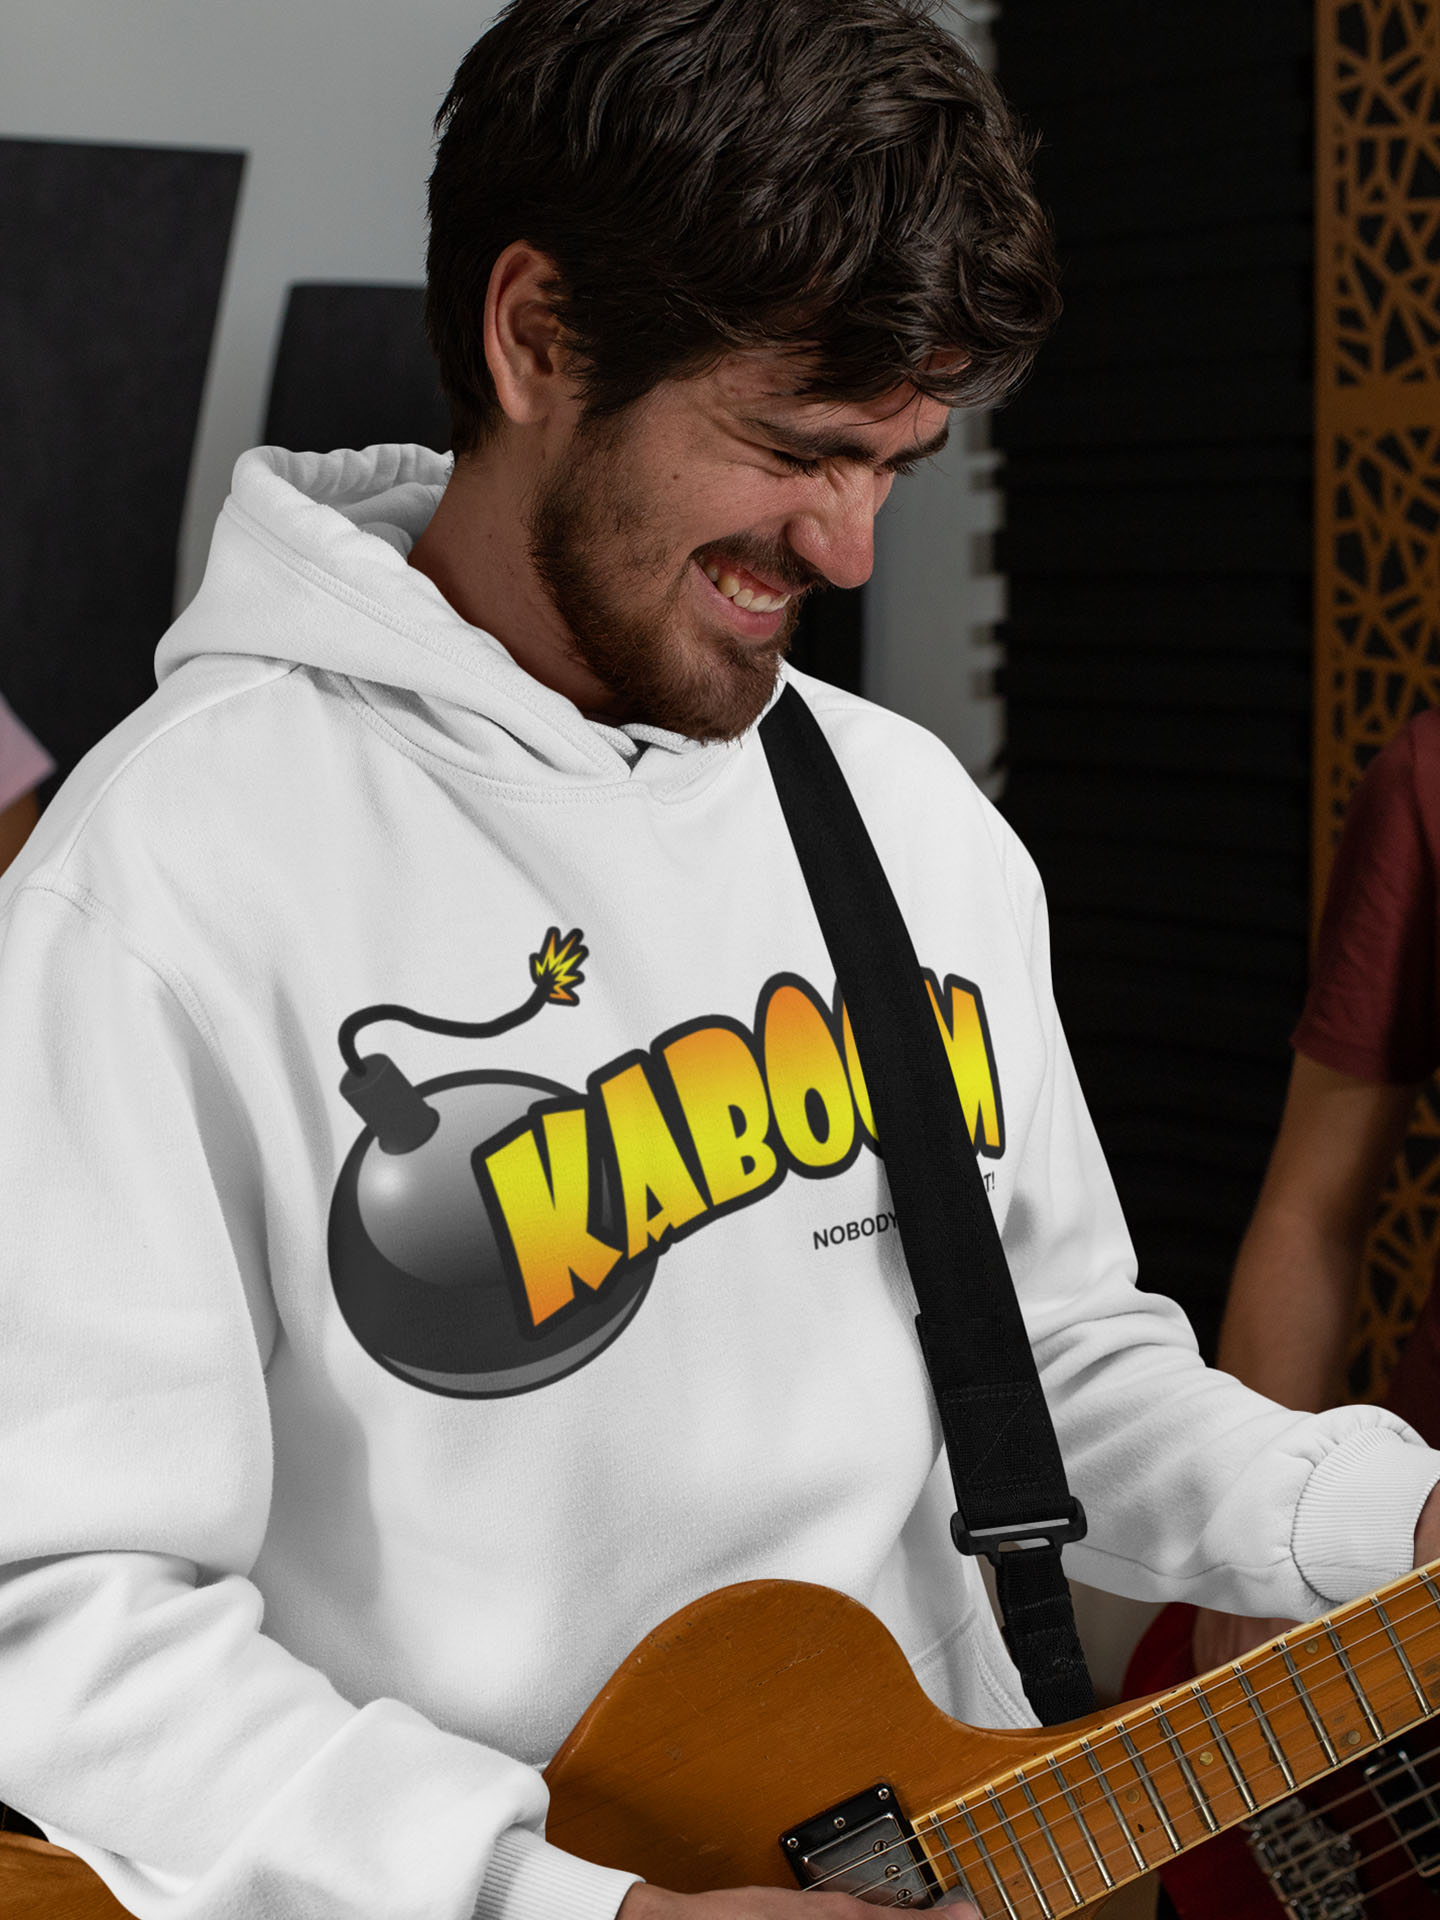 Spredshirt-Prints-Trailfire_0008_pullover-hoodie-mockup-of-a-bearded-man-playing-the-guitar-33340